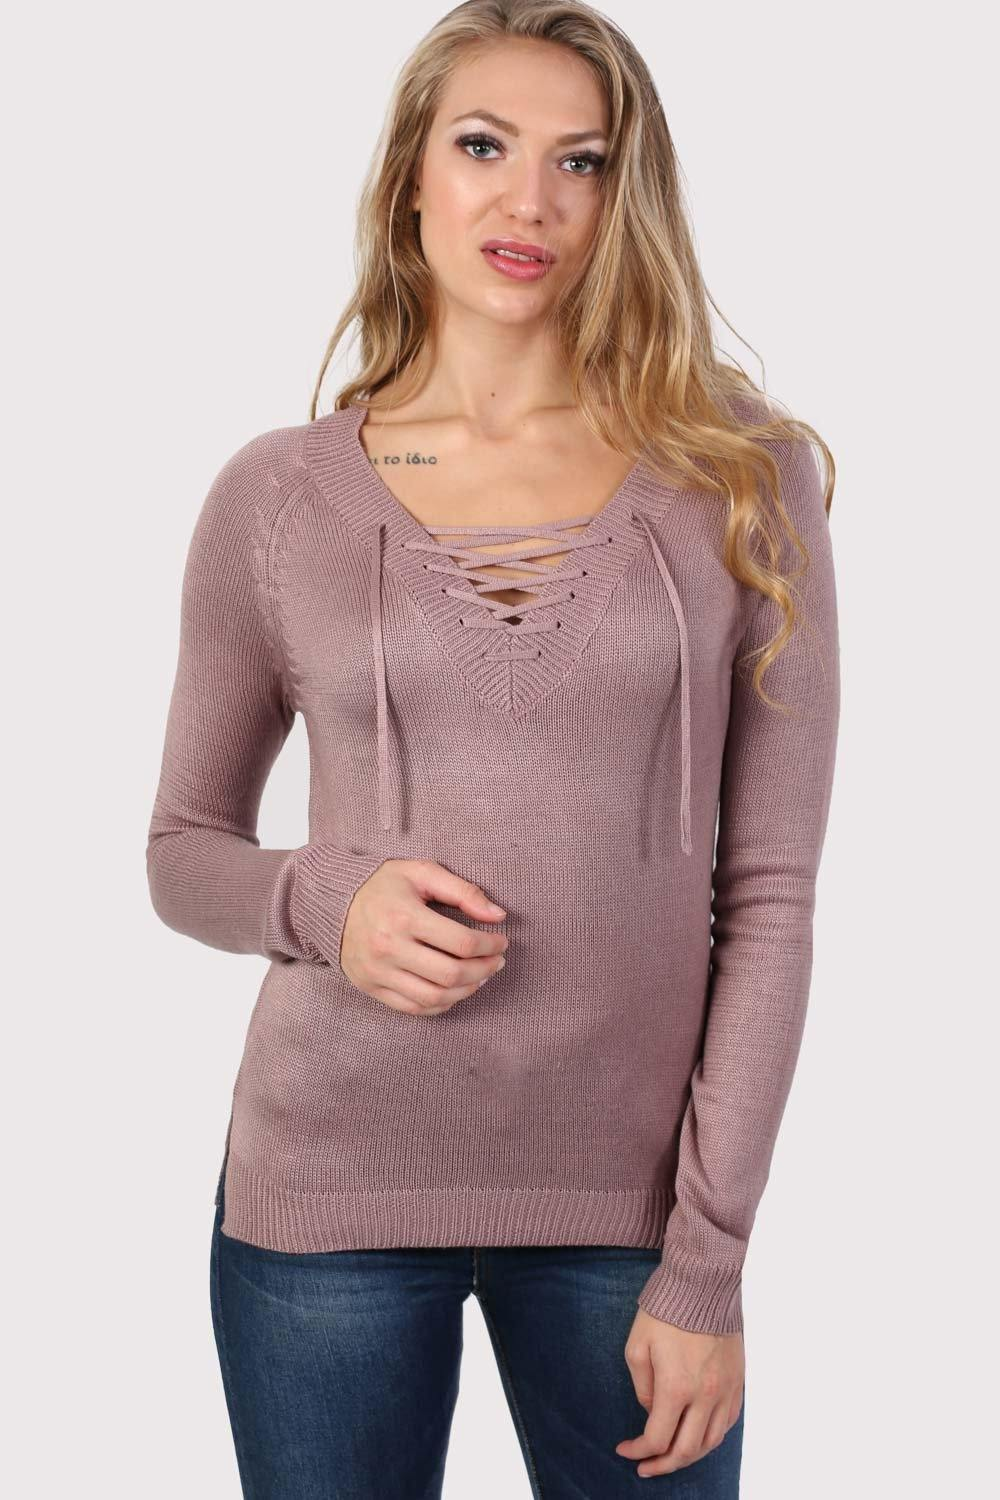 Fine Knit Lace Up Front V Neck Jumper in Dusty Pink 0